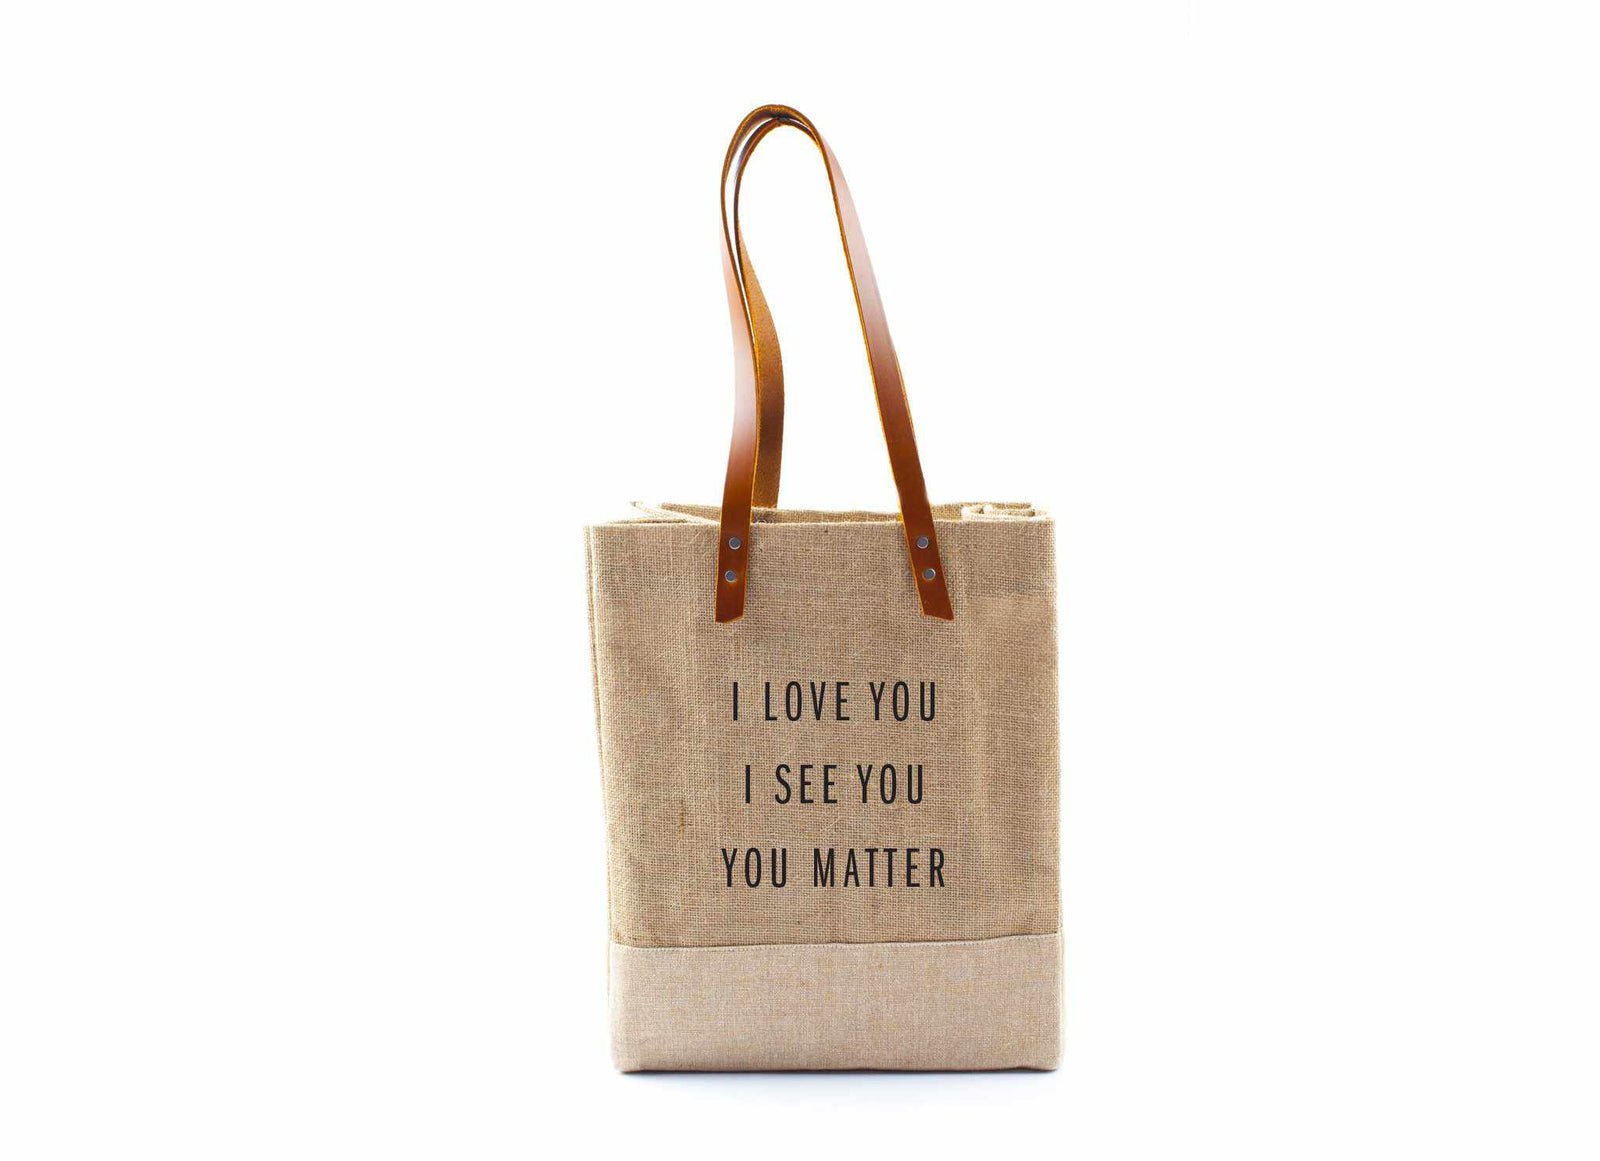 'I Love You I See You You Matter' Wine Tote, through Dec. 15 Only